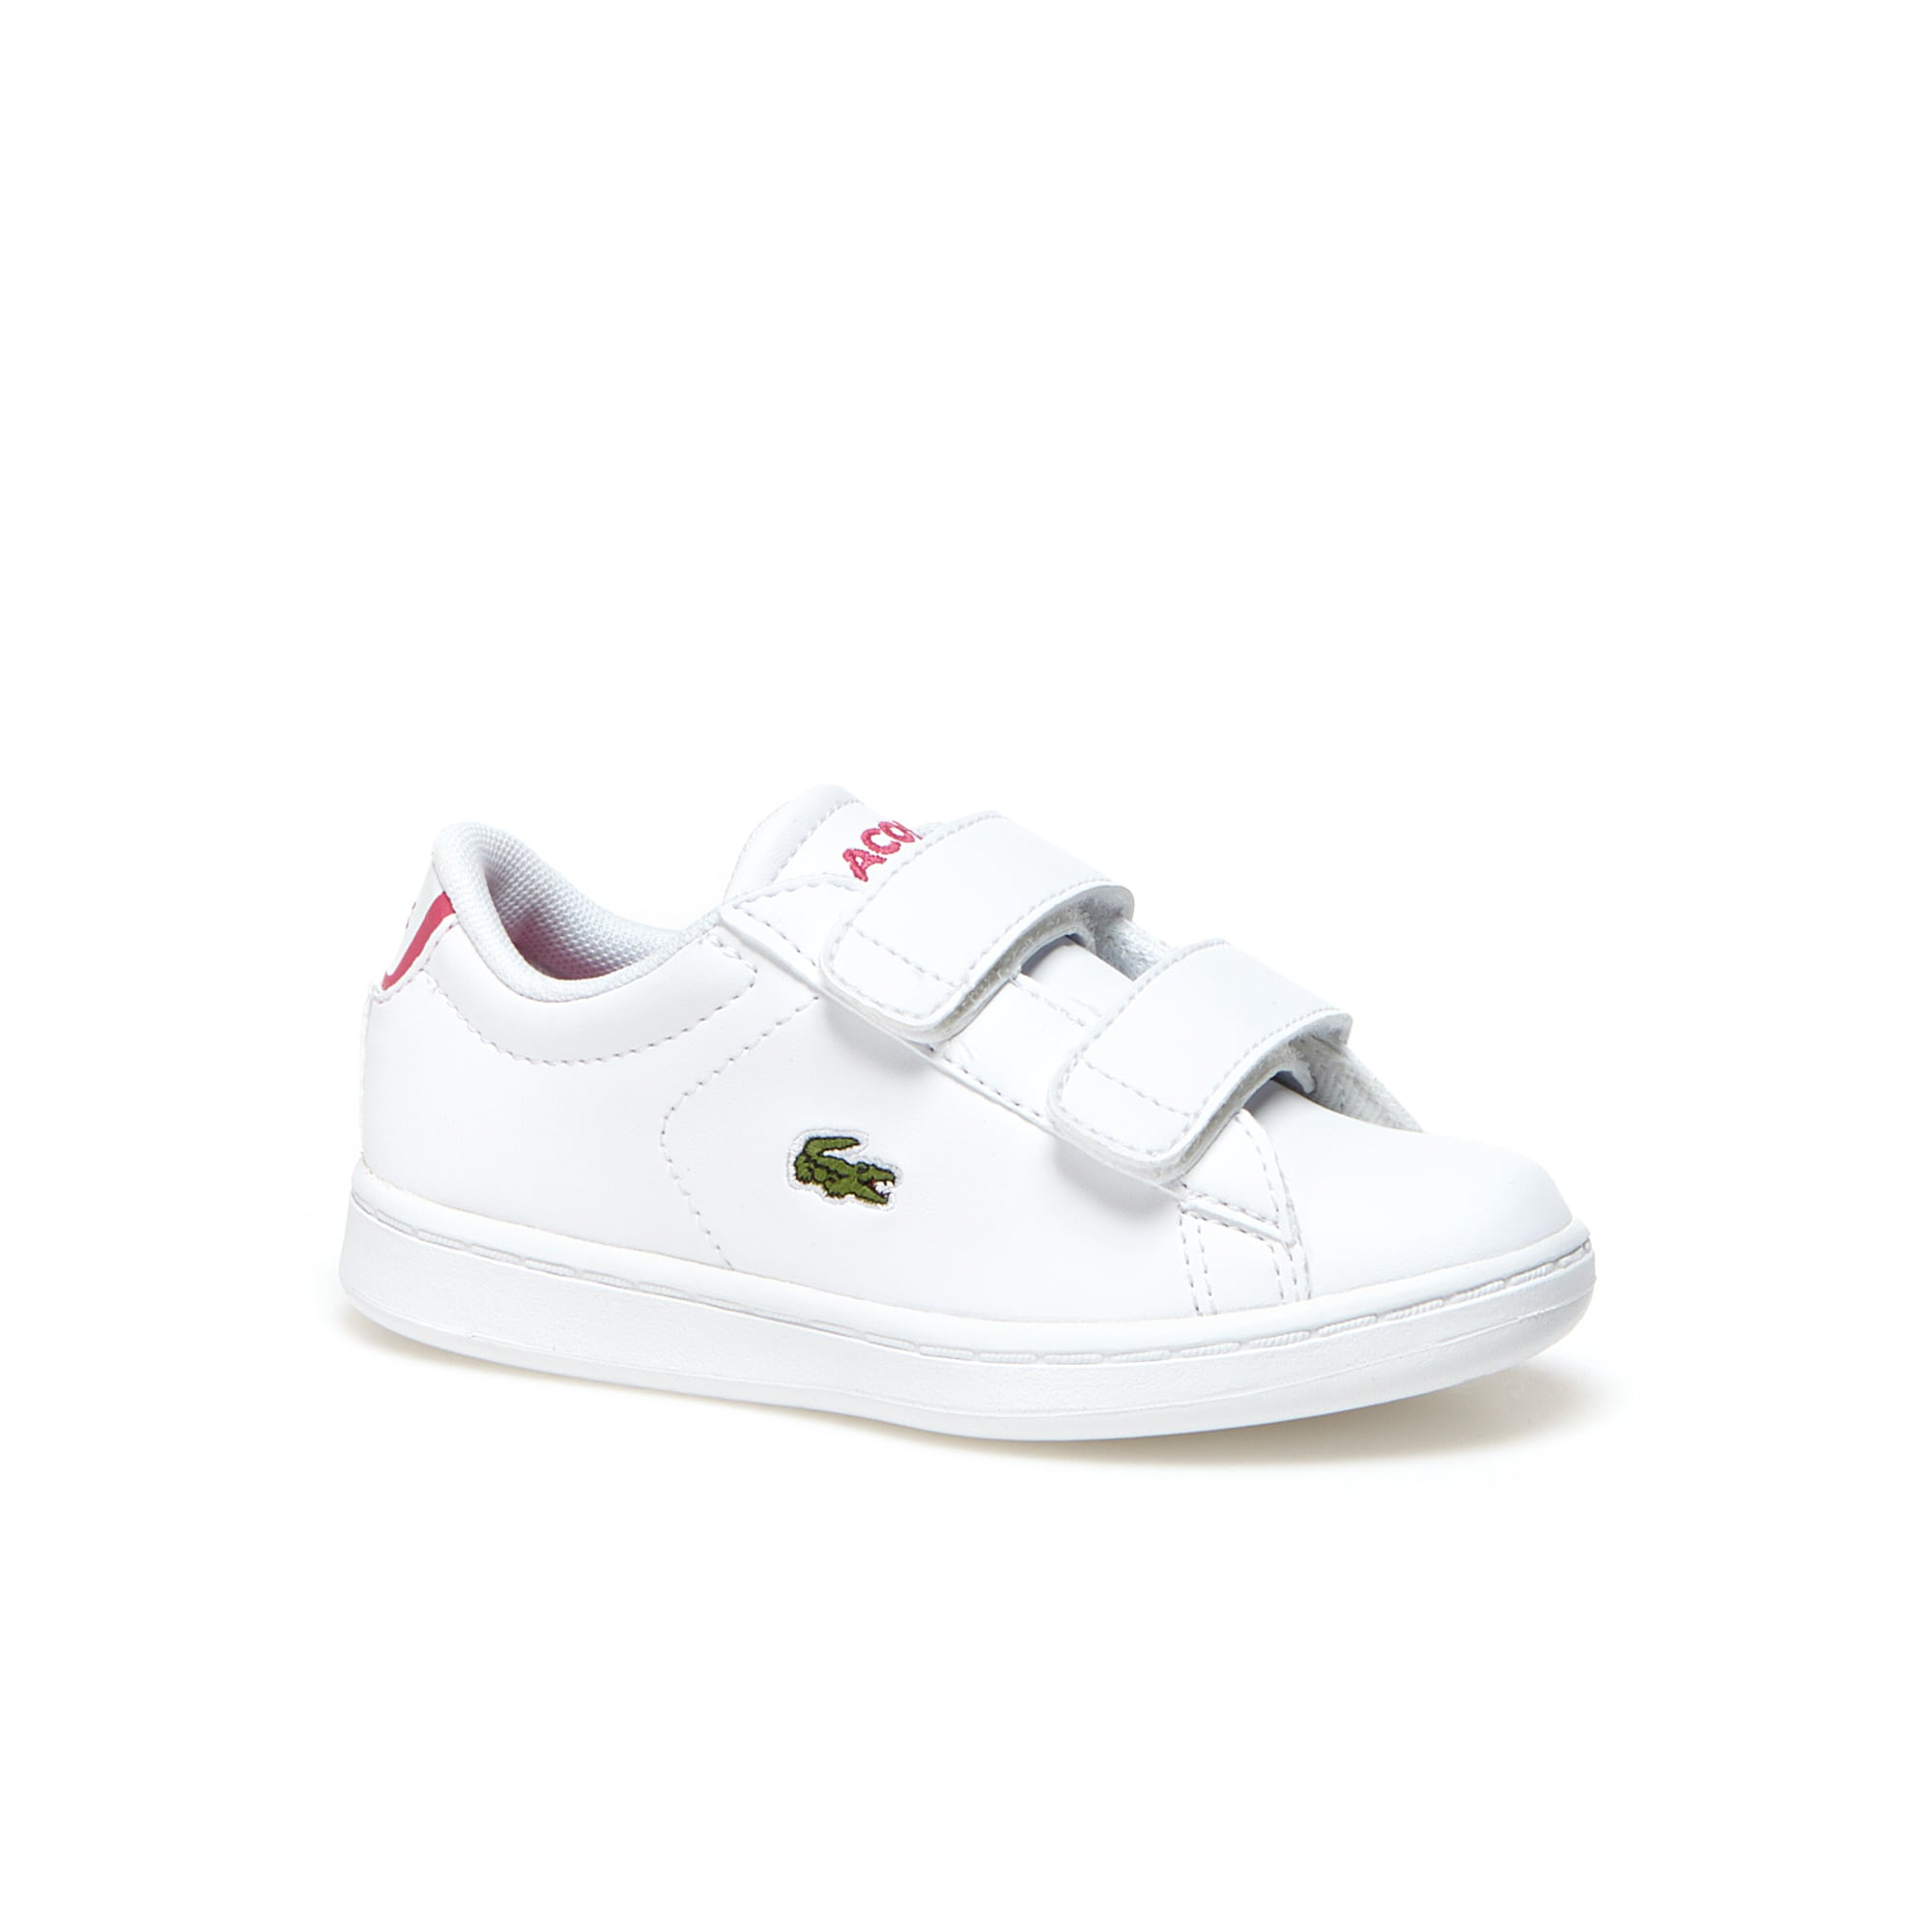 abd5ec59f1c8ed Infants  Carnaby Evo BL Synthetic Trainers